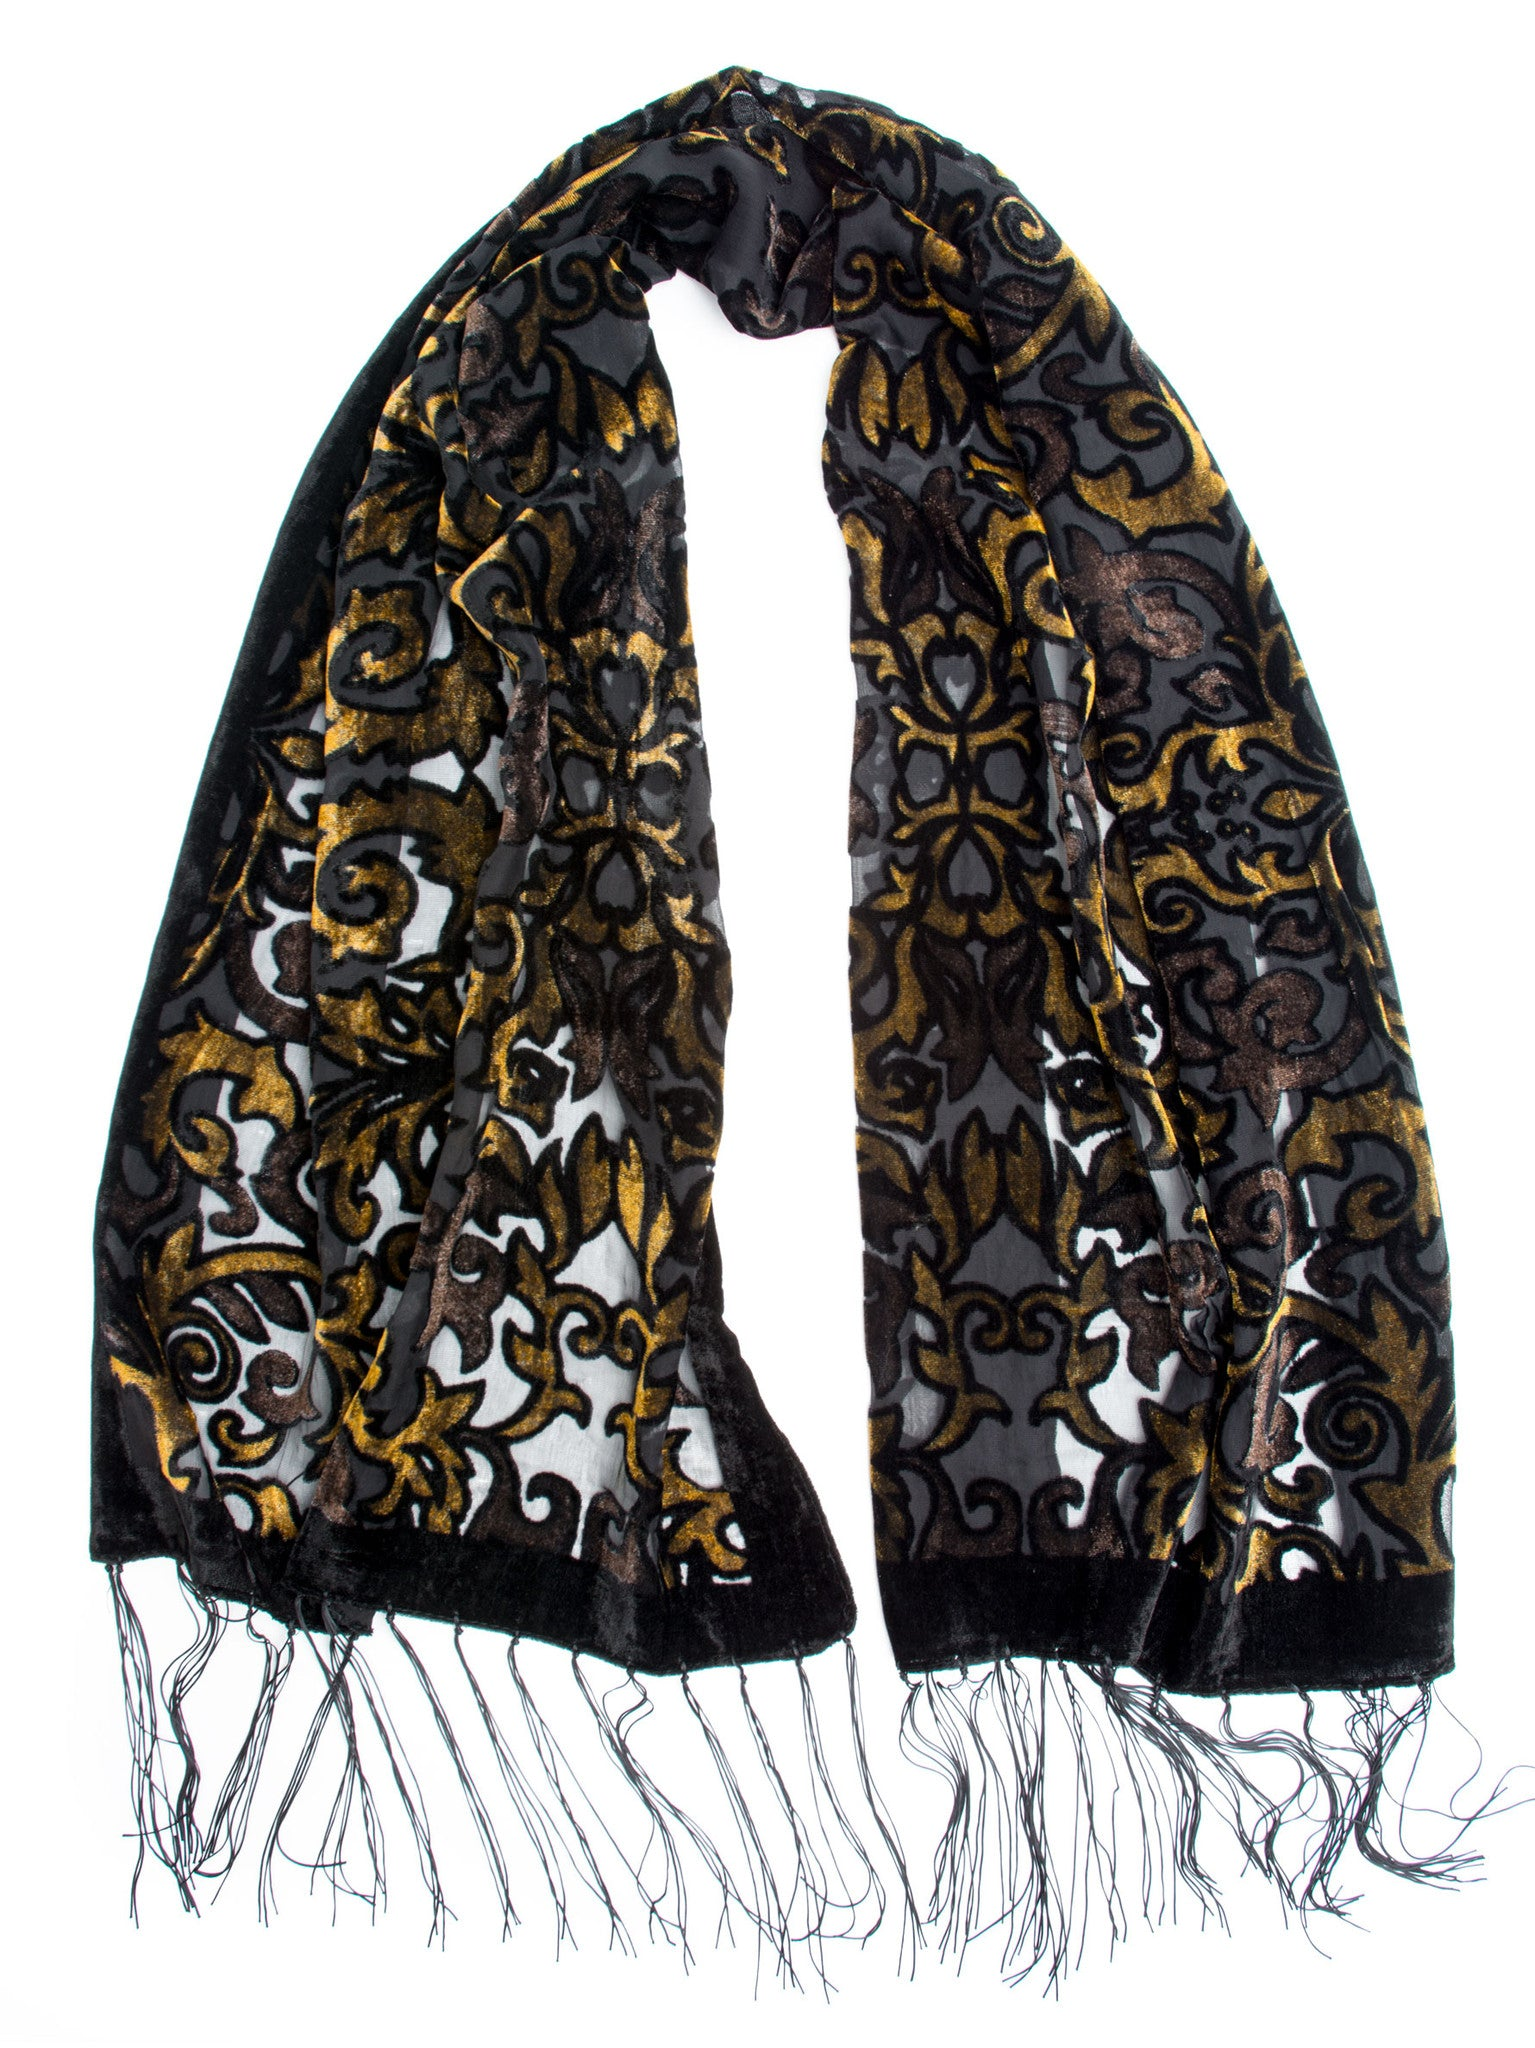 Scarves - Gia Scarf - Silk Brocade Print Velvet Burnout Scarf with Fringe Ends -(Gold/Chocolate/Black) Bohomonde  - 6